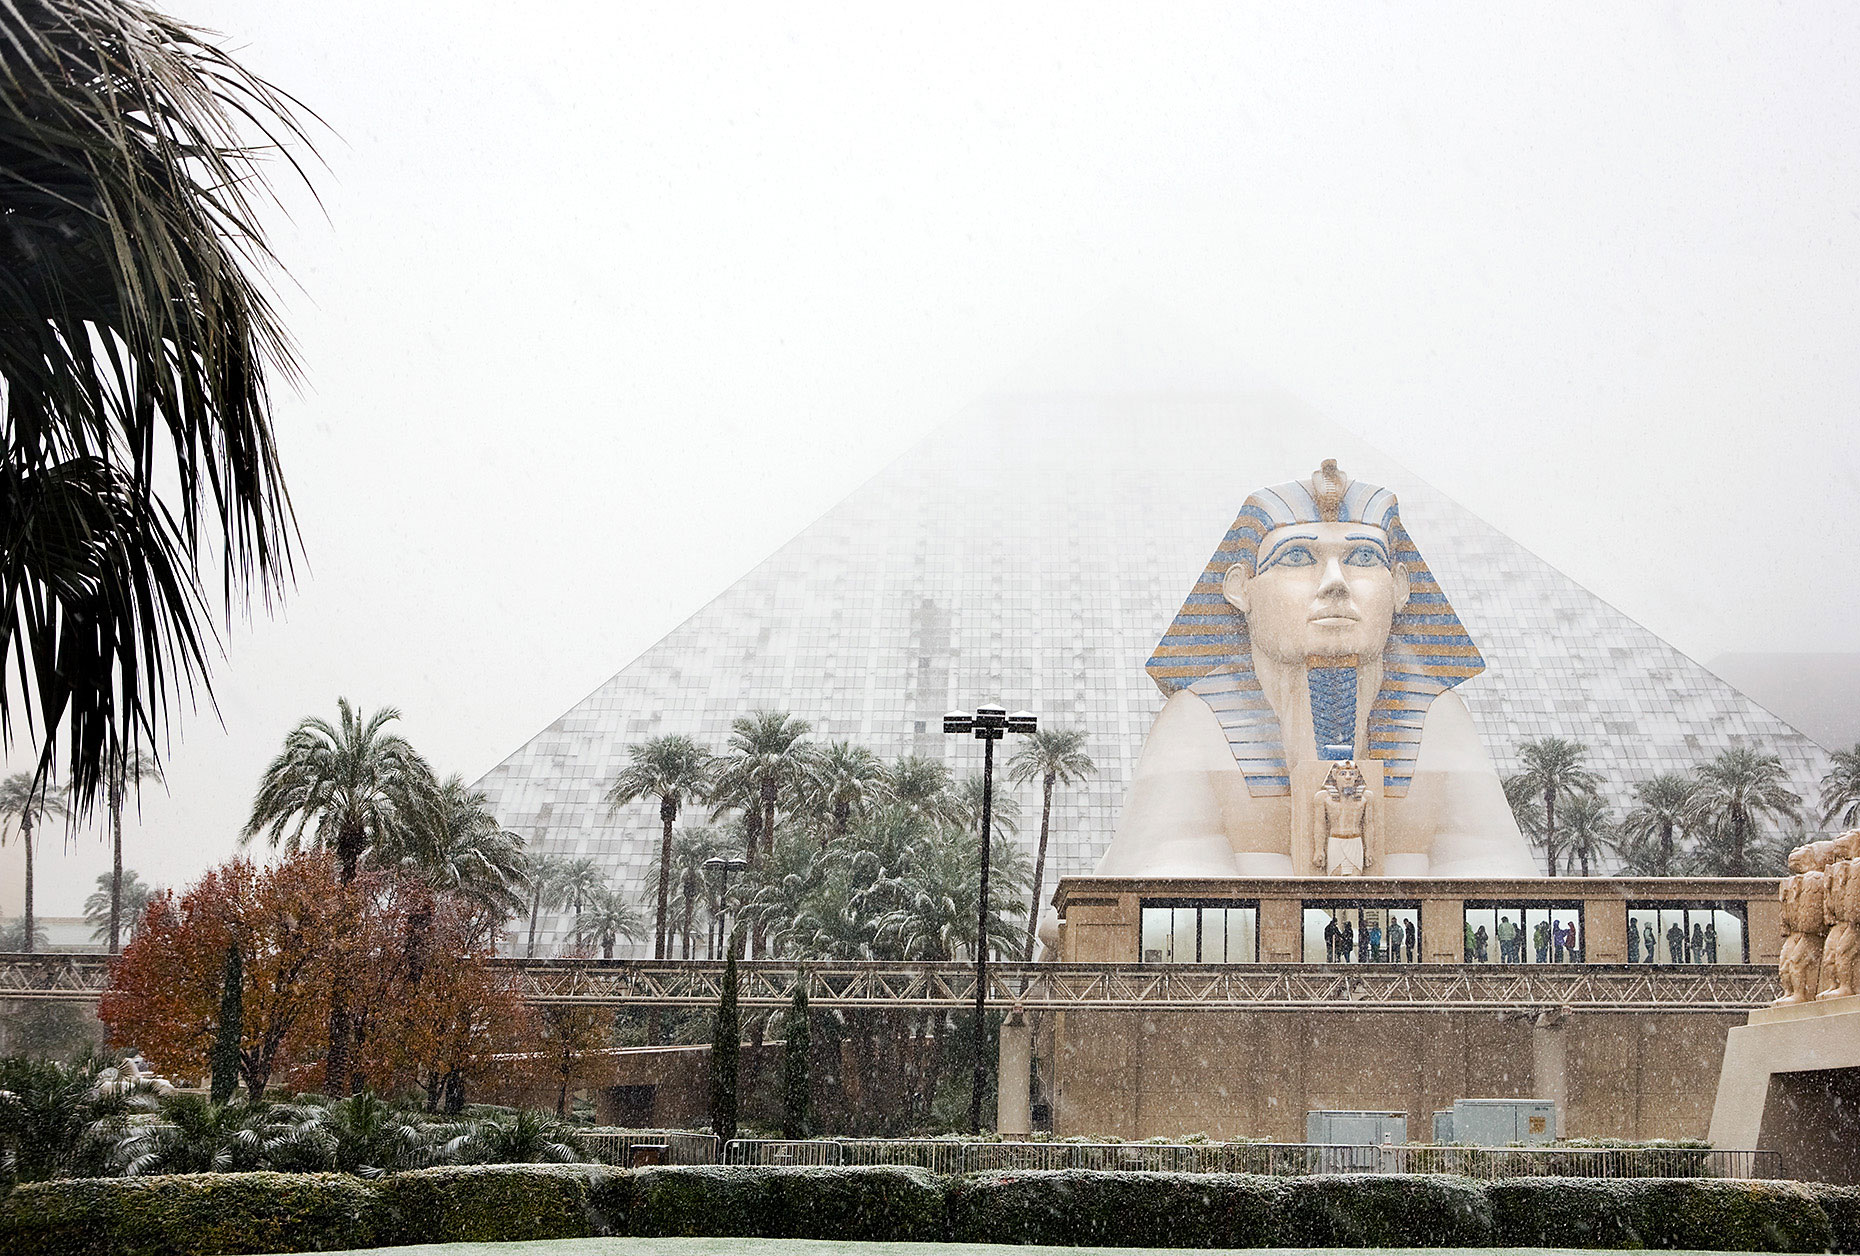 luxor_snow_4914_no_crop